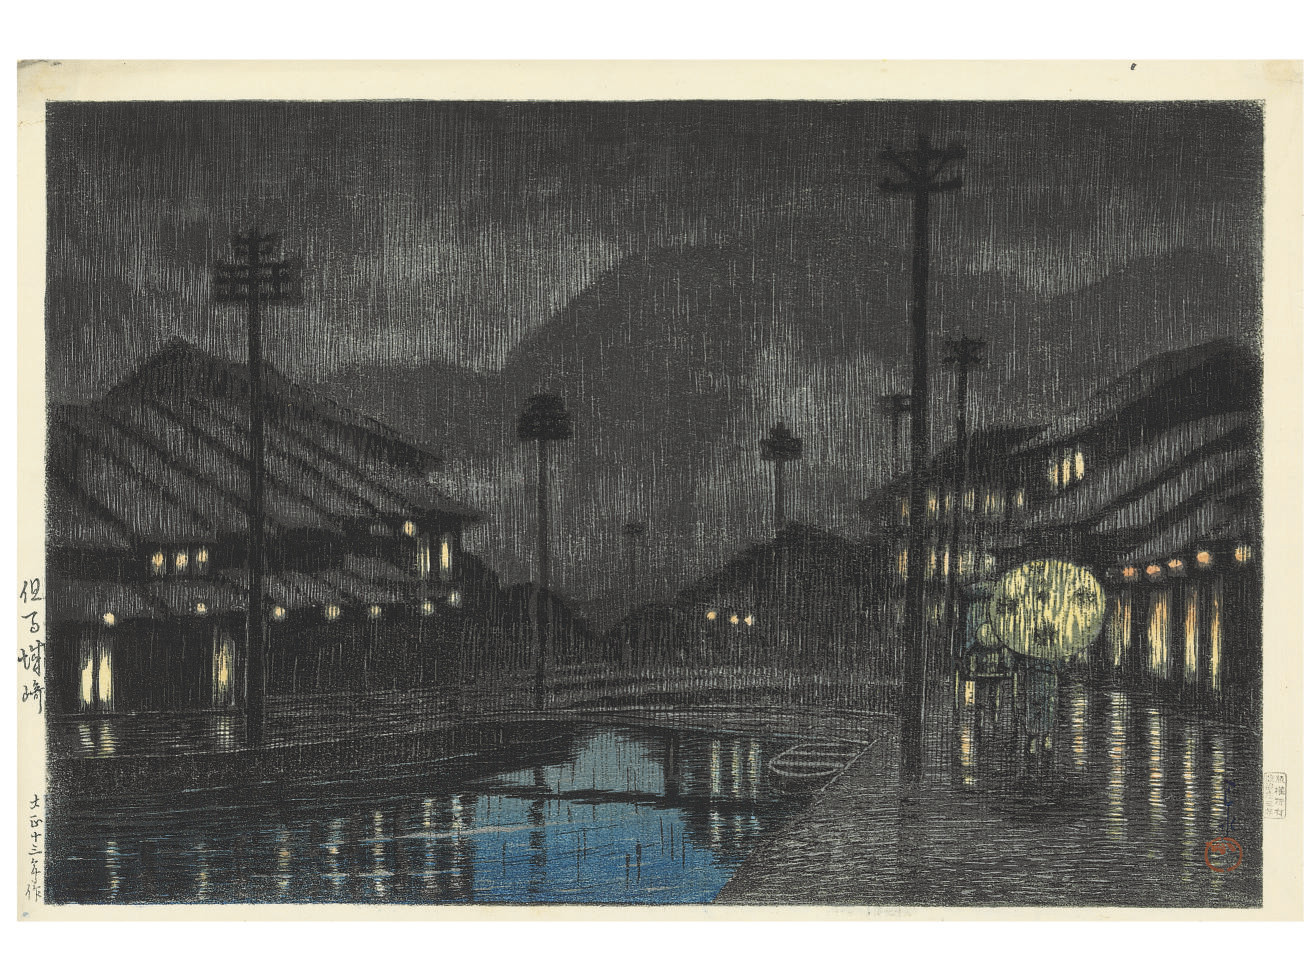 Tajima Shirozaki (Shirozaki, Tajima Province), from the series Tabimiyage daisanshu (Souvenirs of travel--third series), 1924